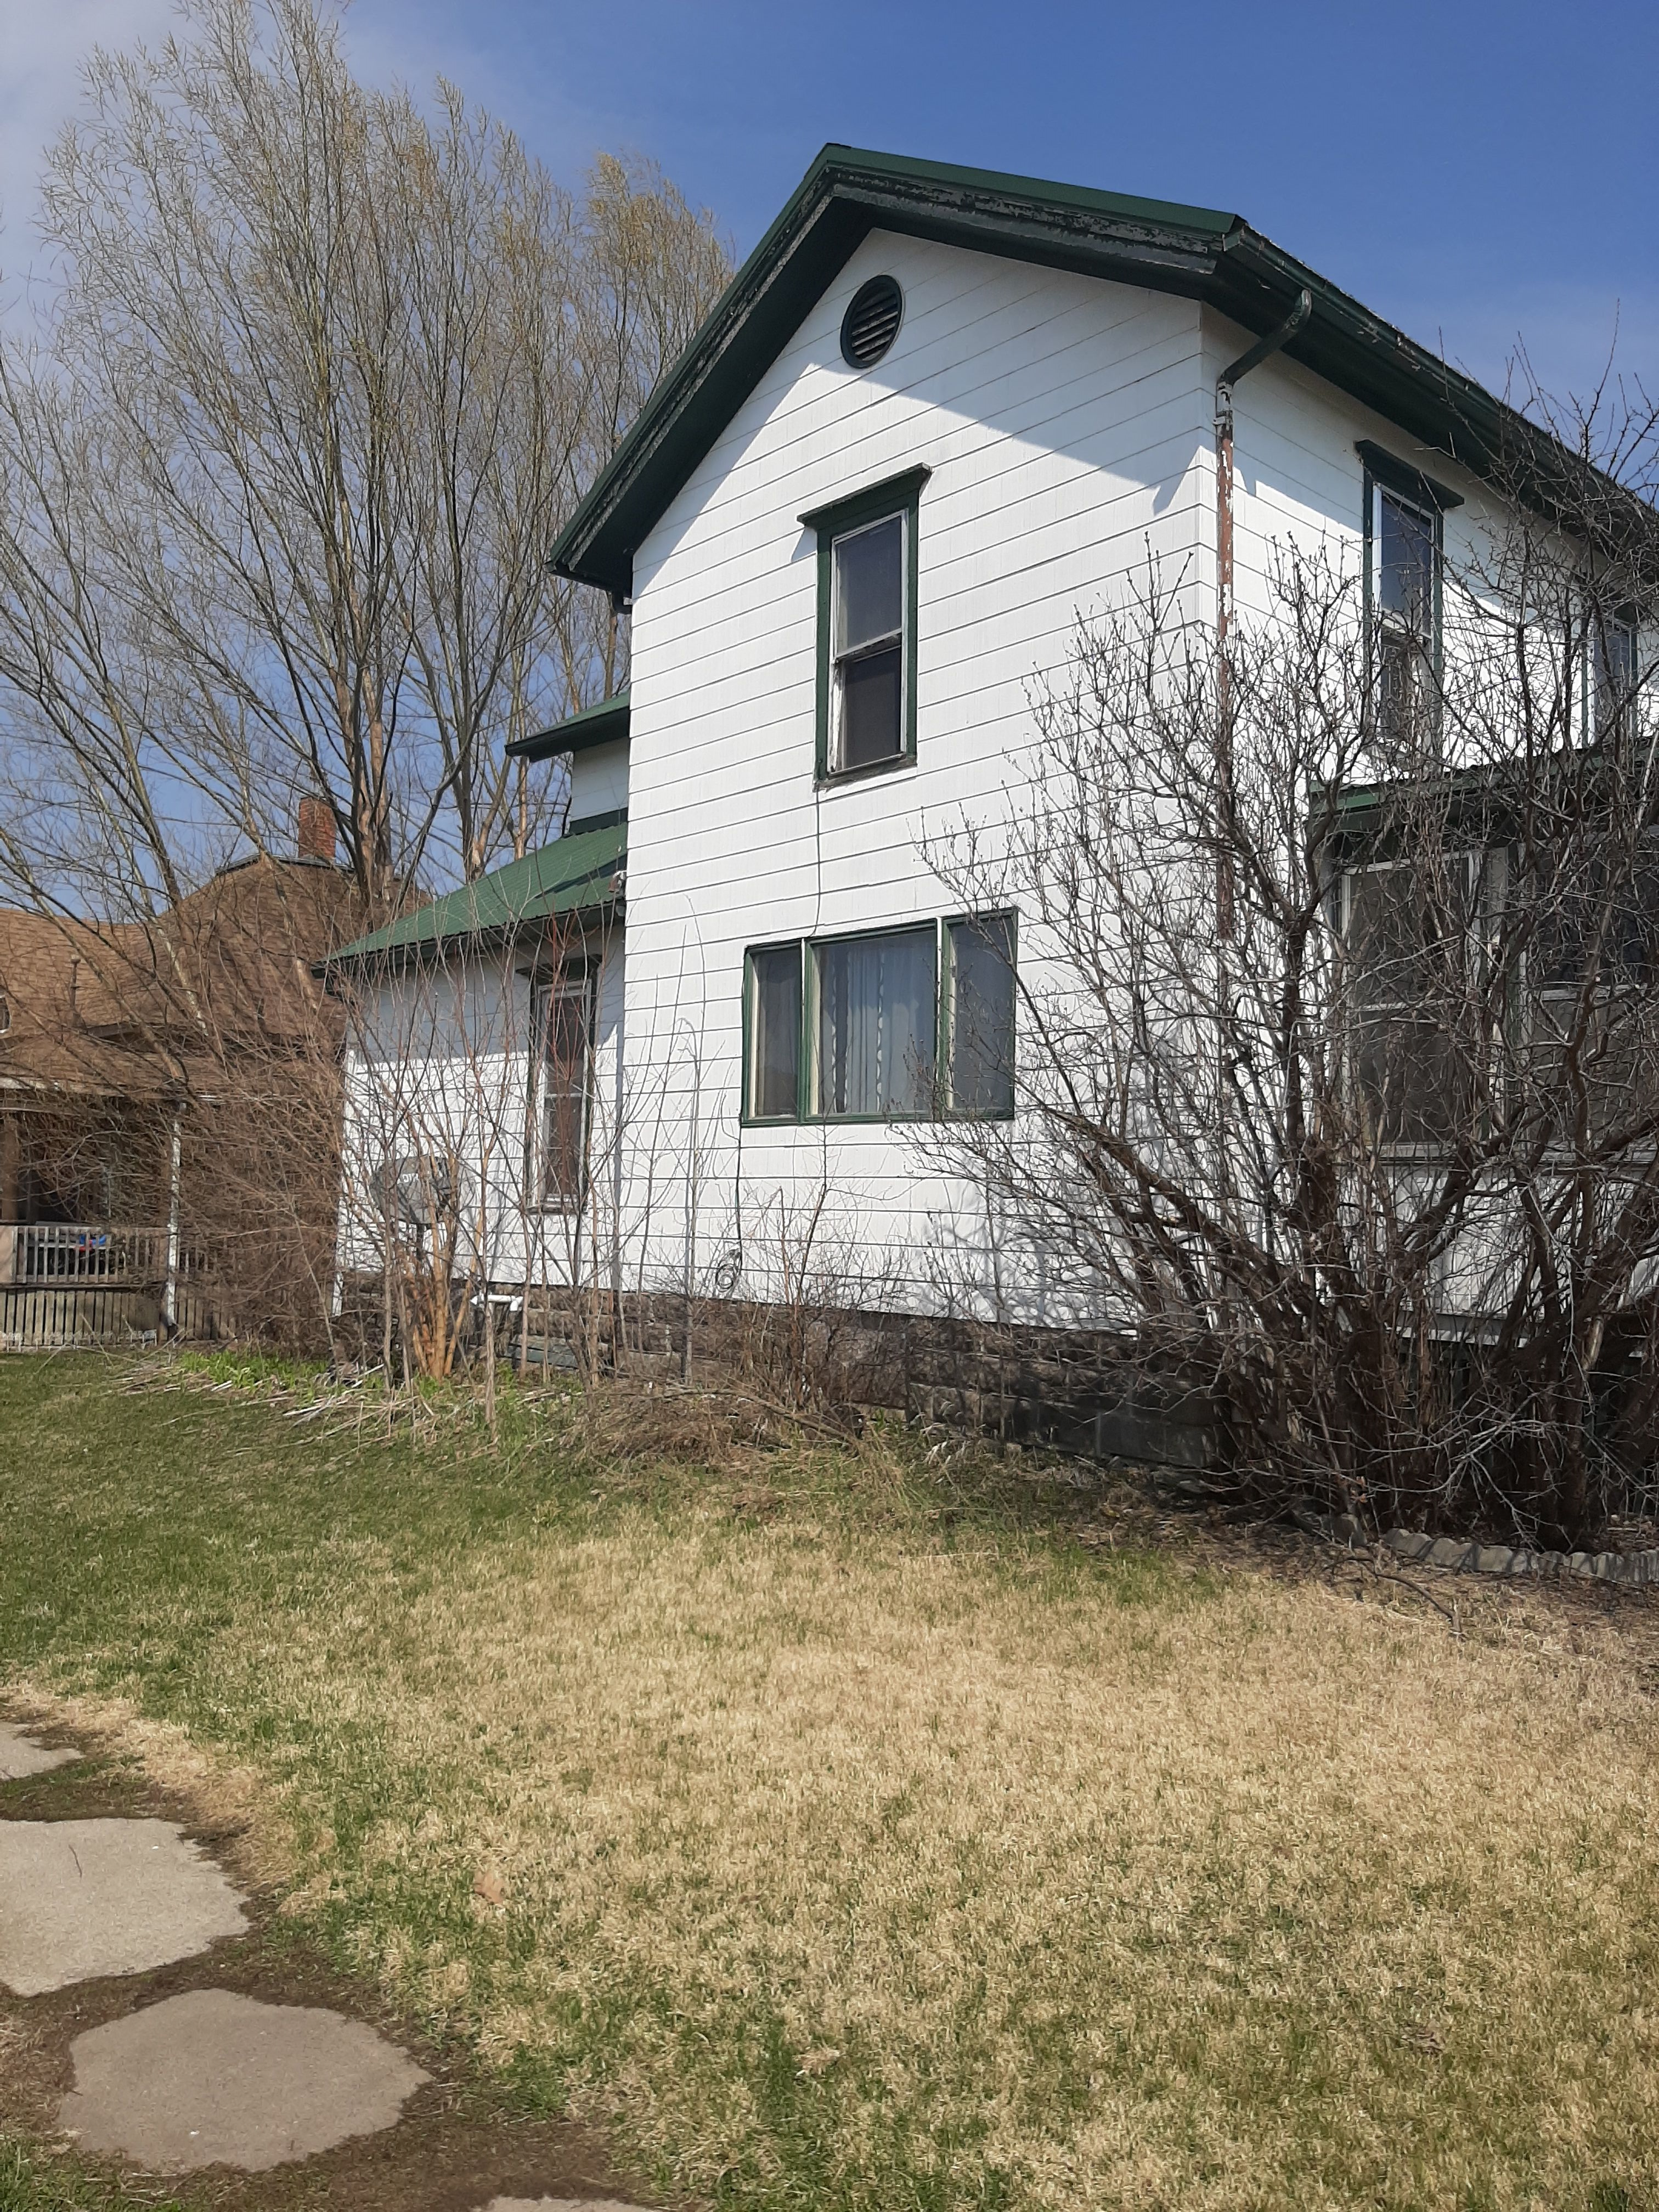 215 W 8th St, Vinton, IA